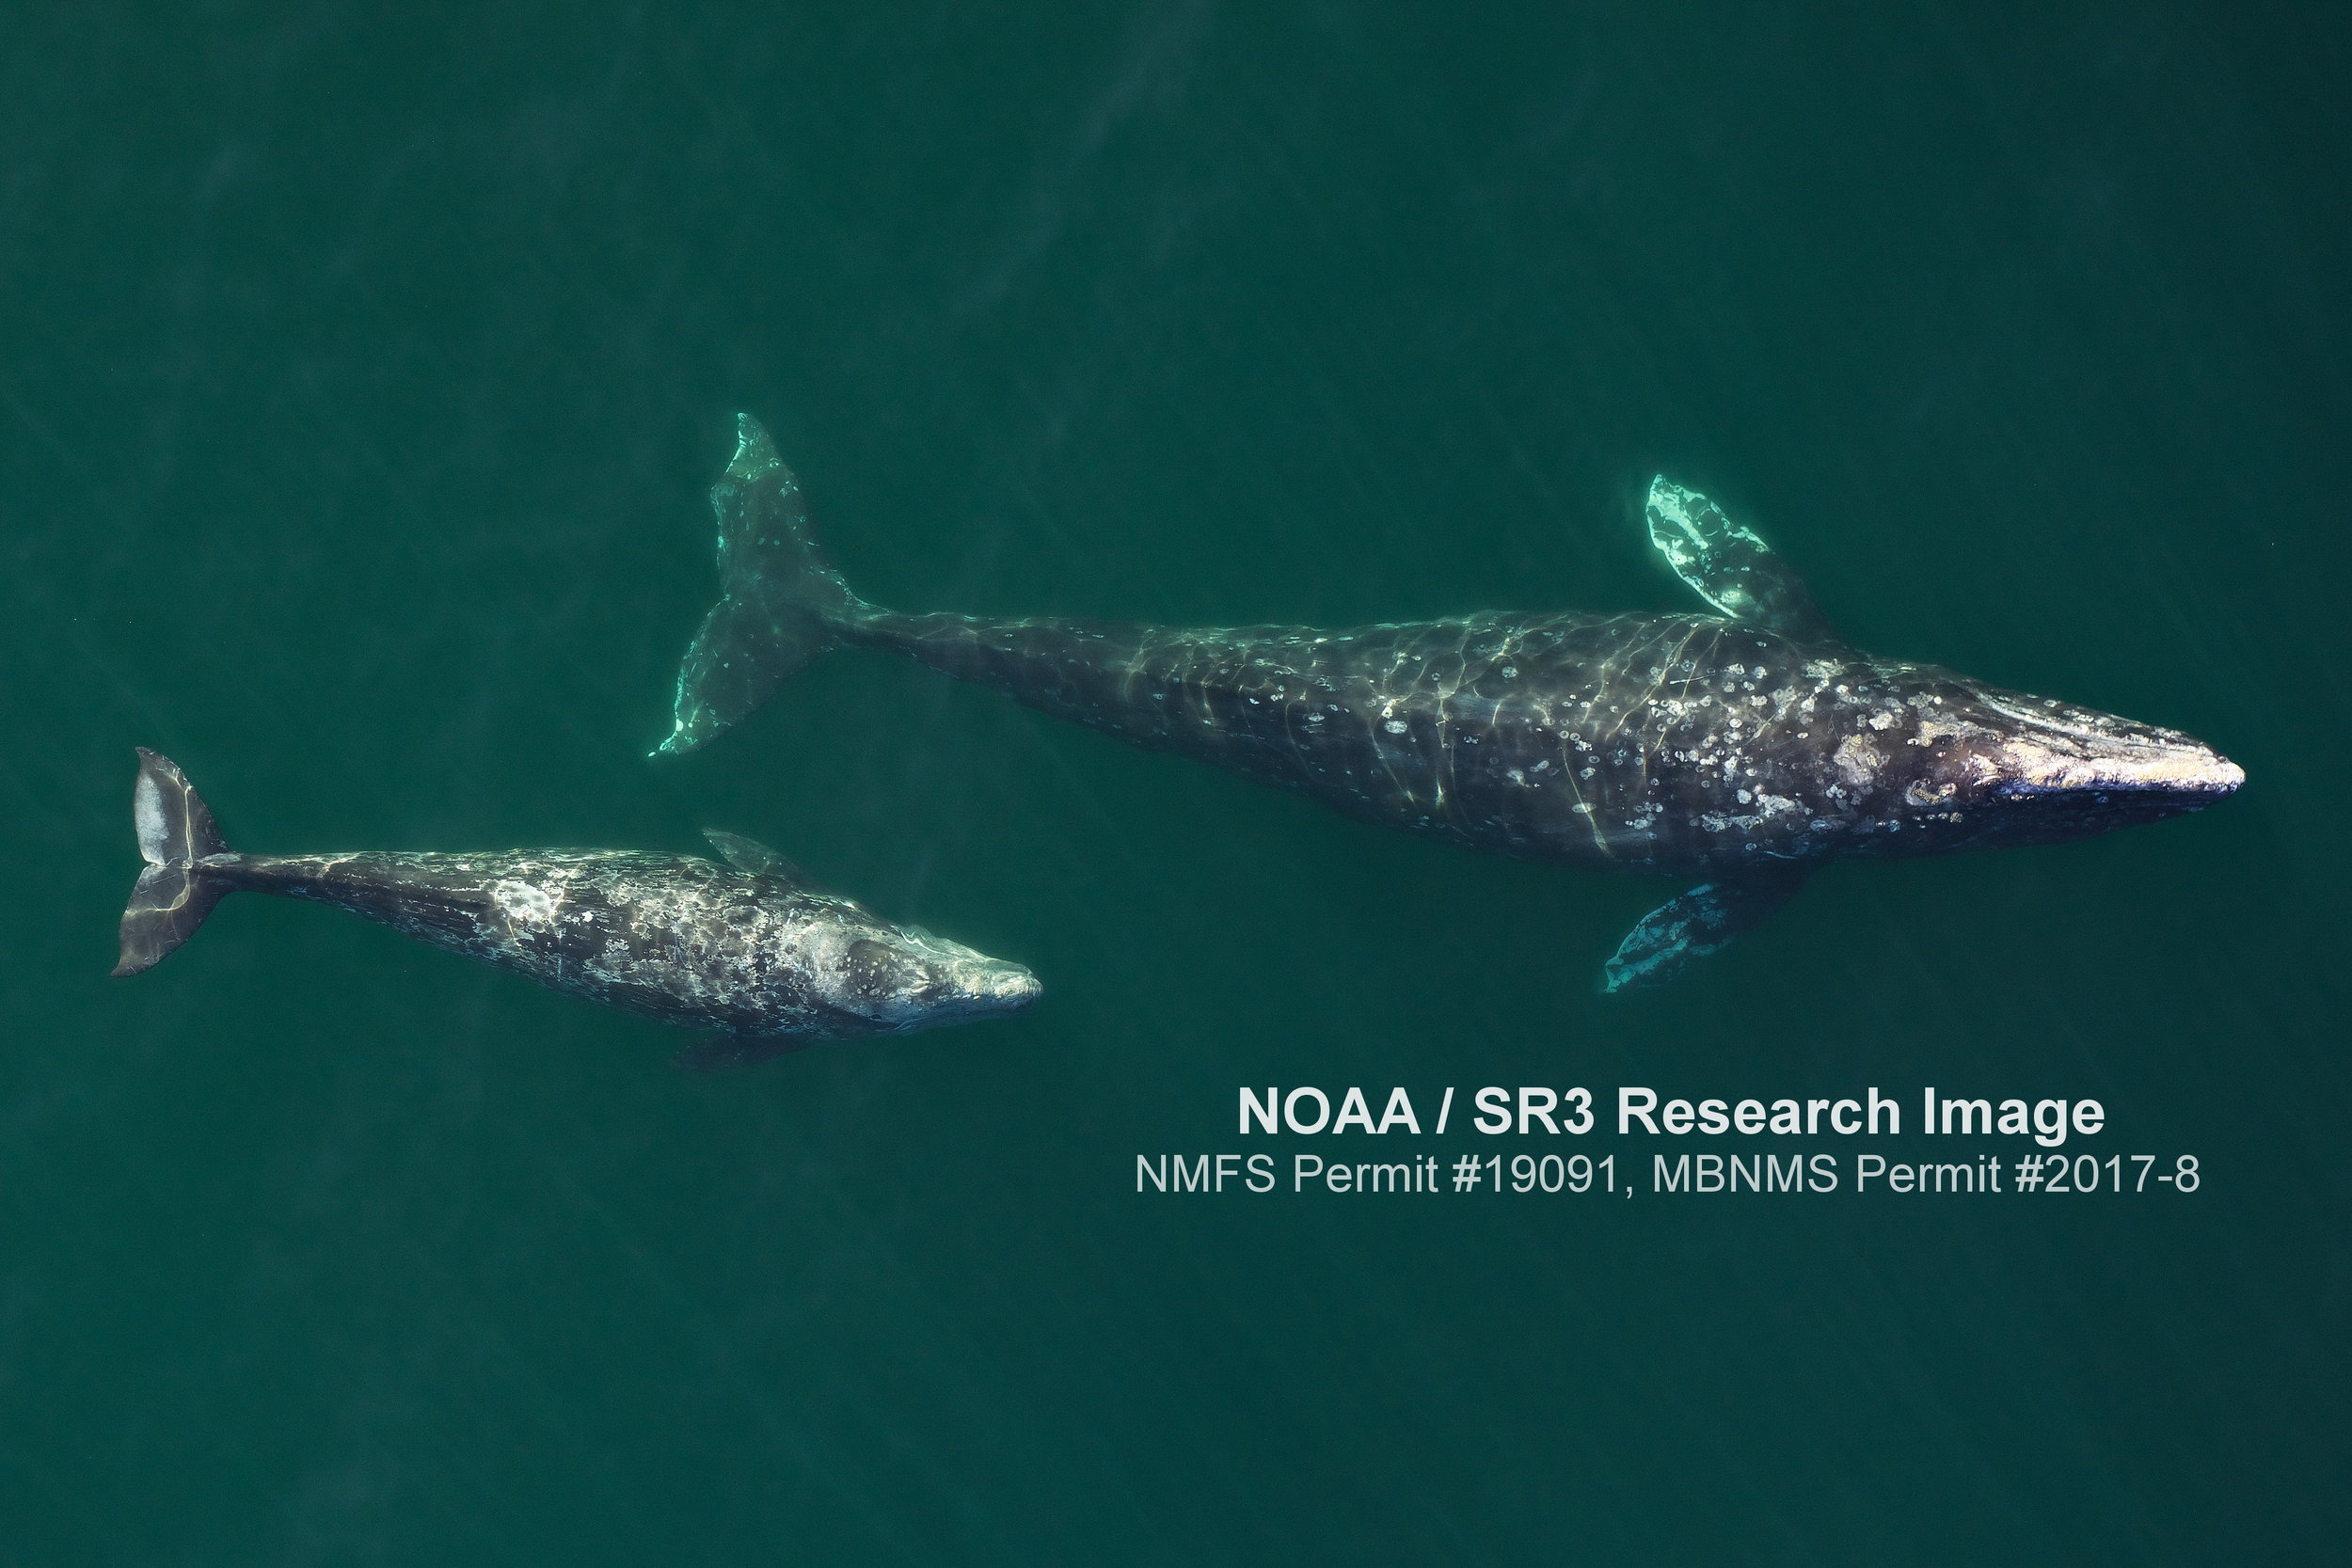 Aerial image of a female/calf gray whale pair as they migrate past Piedras Blancas Lighthouse on the coast of Central California. Image taken from an unmanned octocopter >150ft above the whales, with flights over whales authorized by NMFS permit #19091.